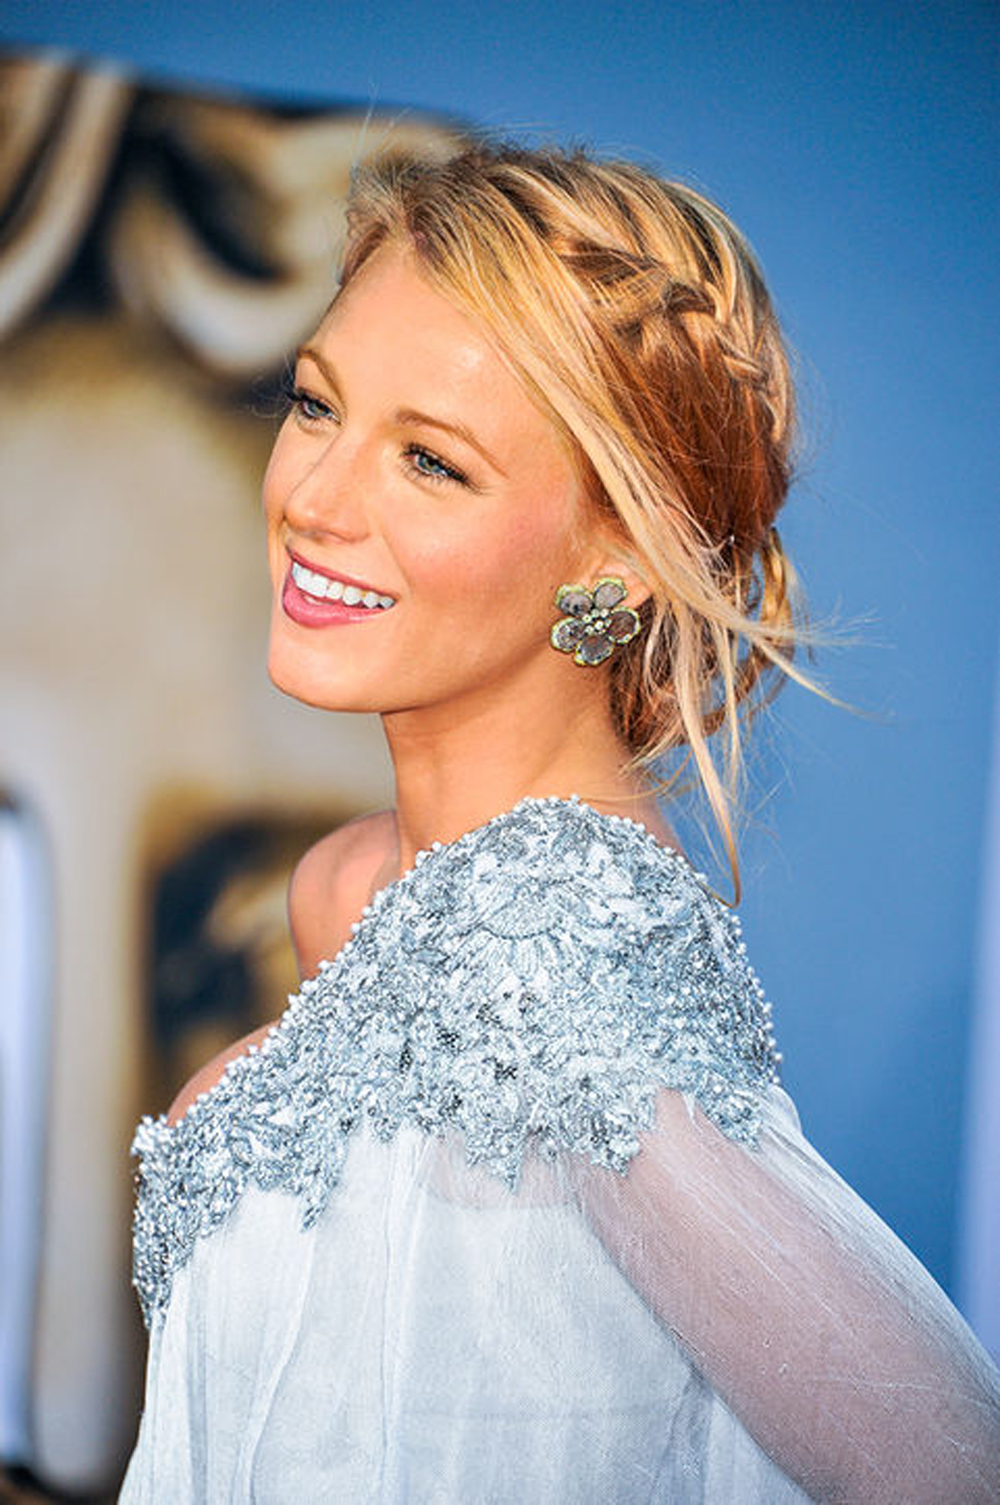 09-blake-lively-braid-h724